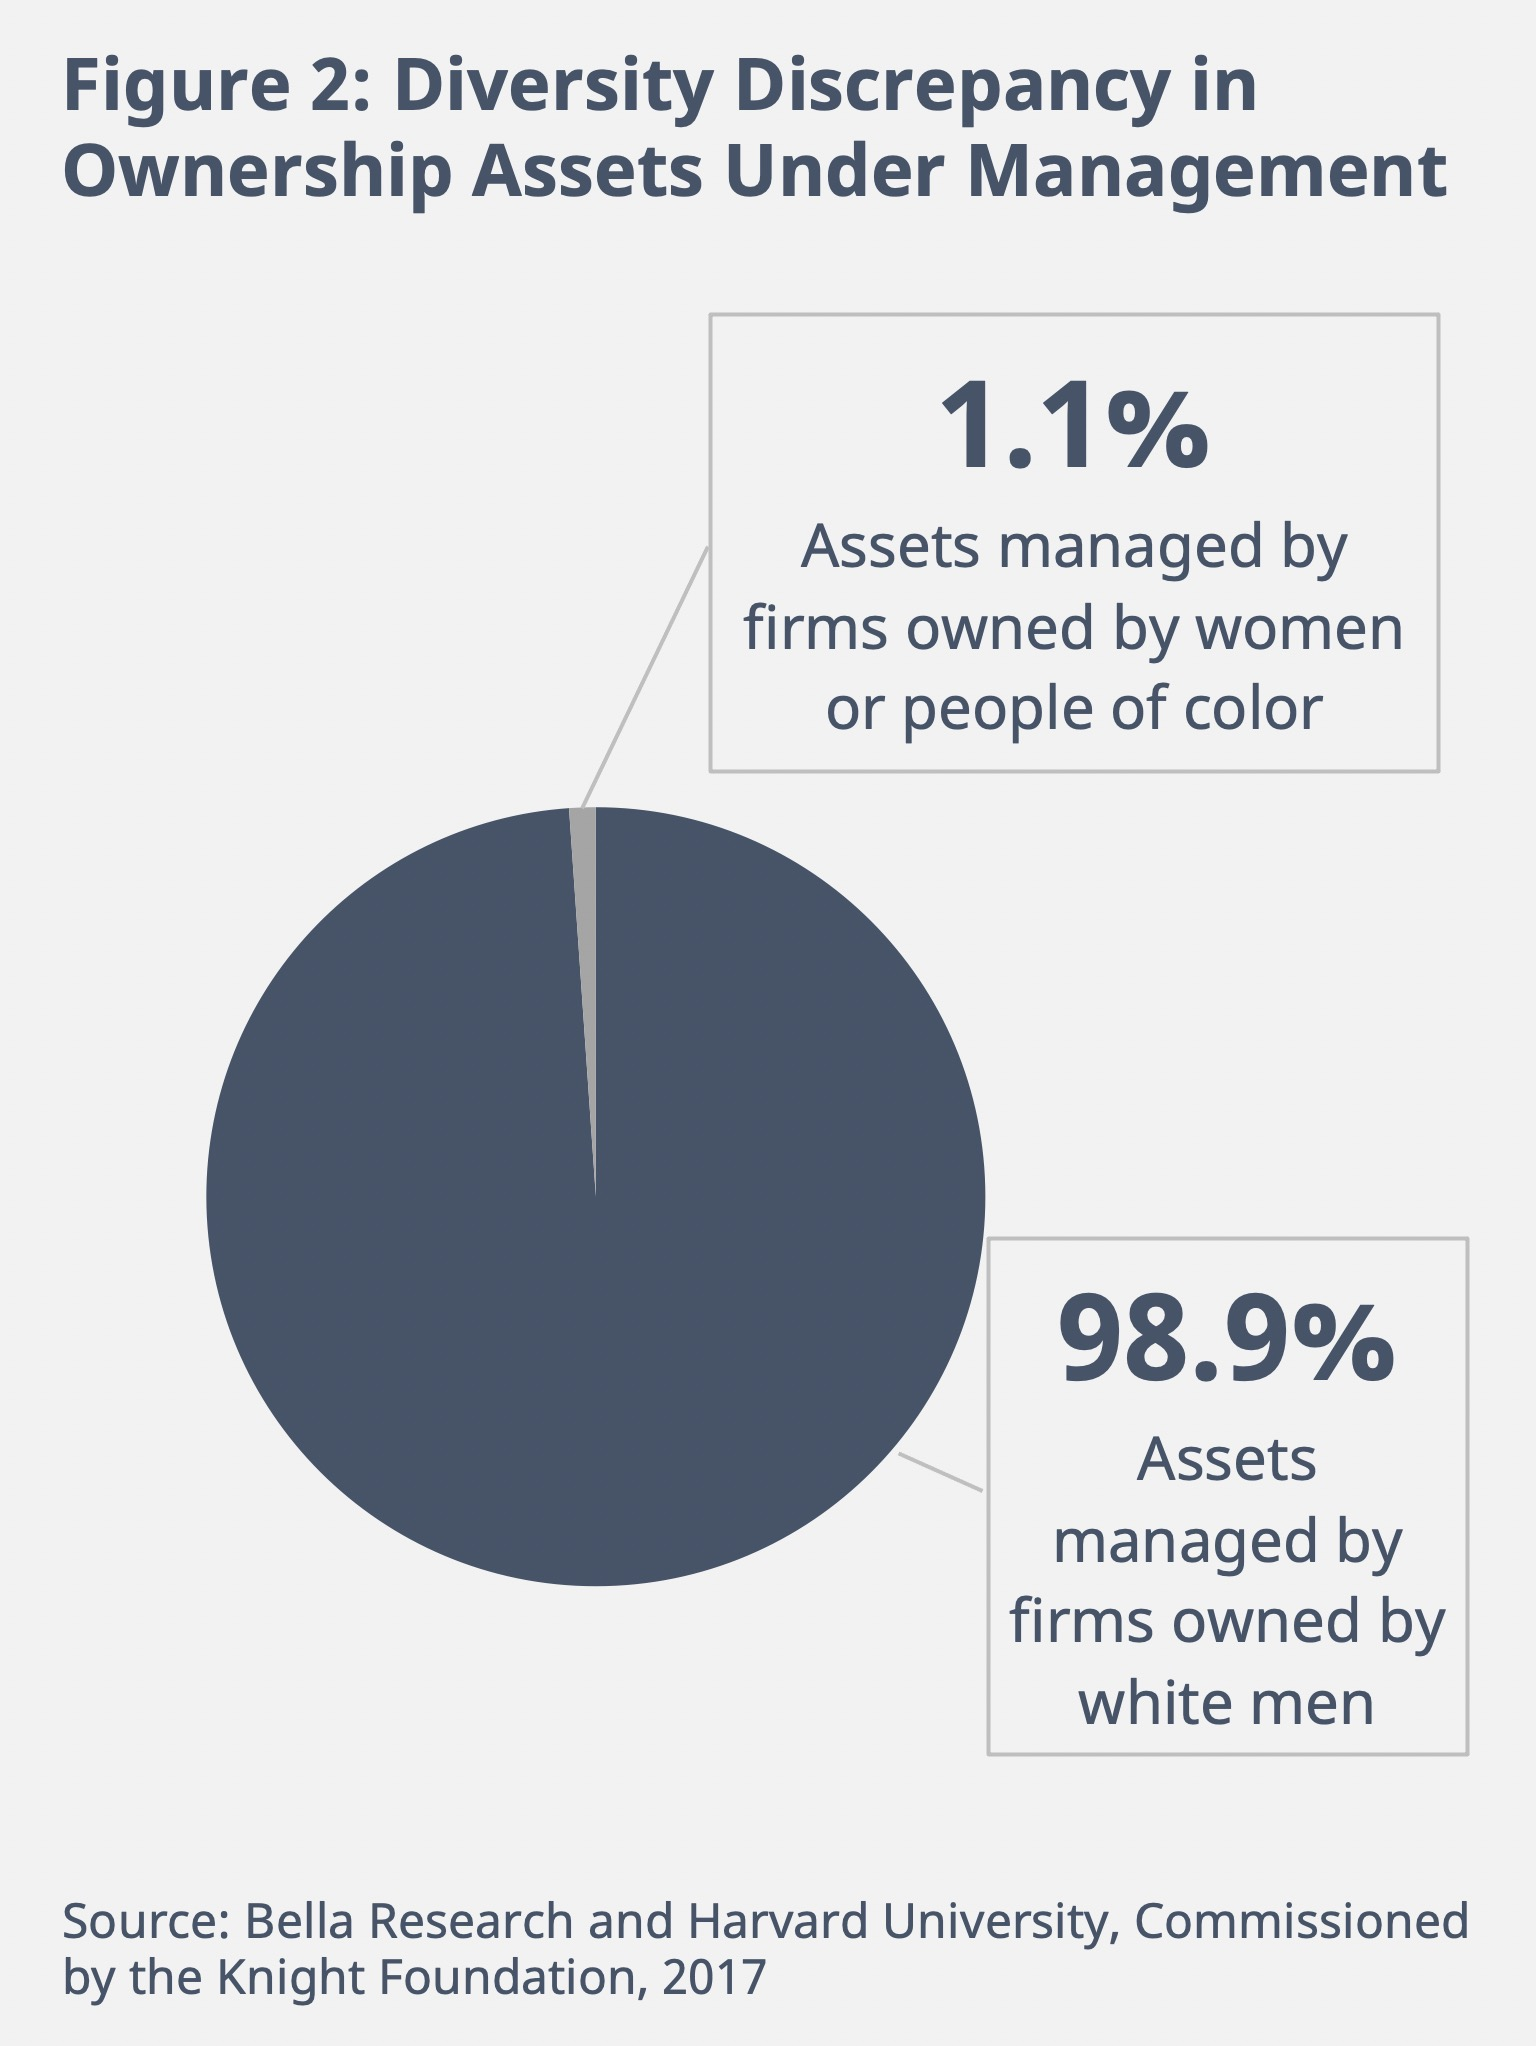 Figure 2: Diversity Discrepancy in Ownership Assets Under Management. 98.9% of assets are managed by firms owned by white men.